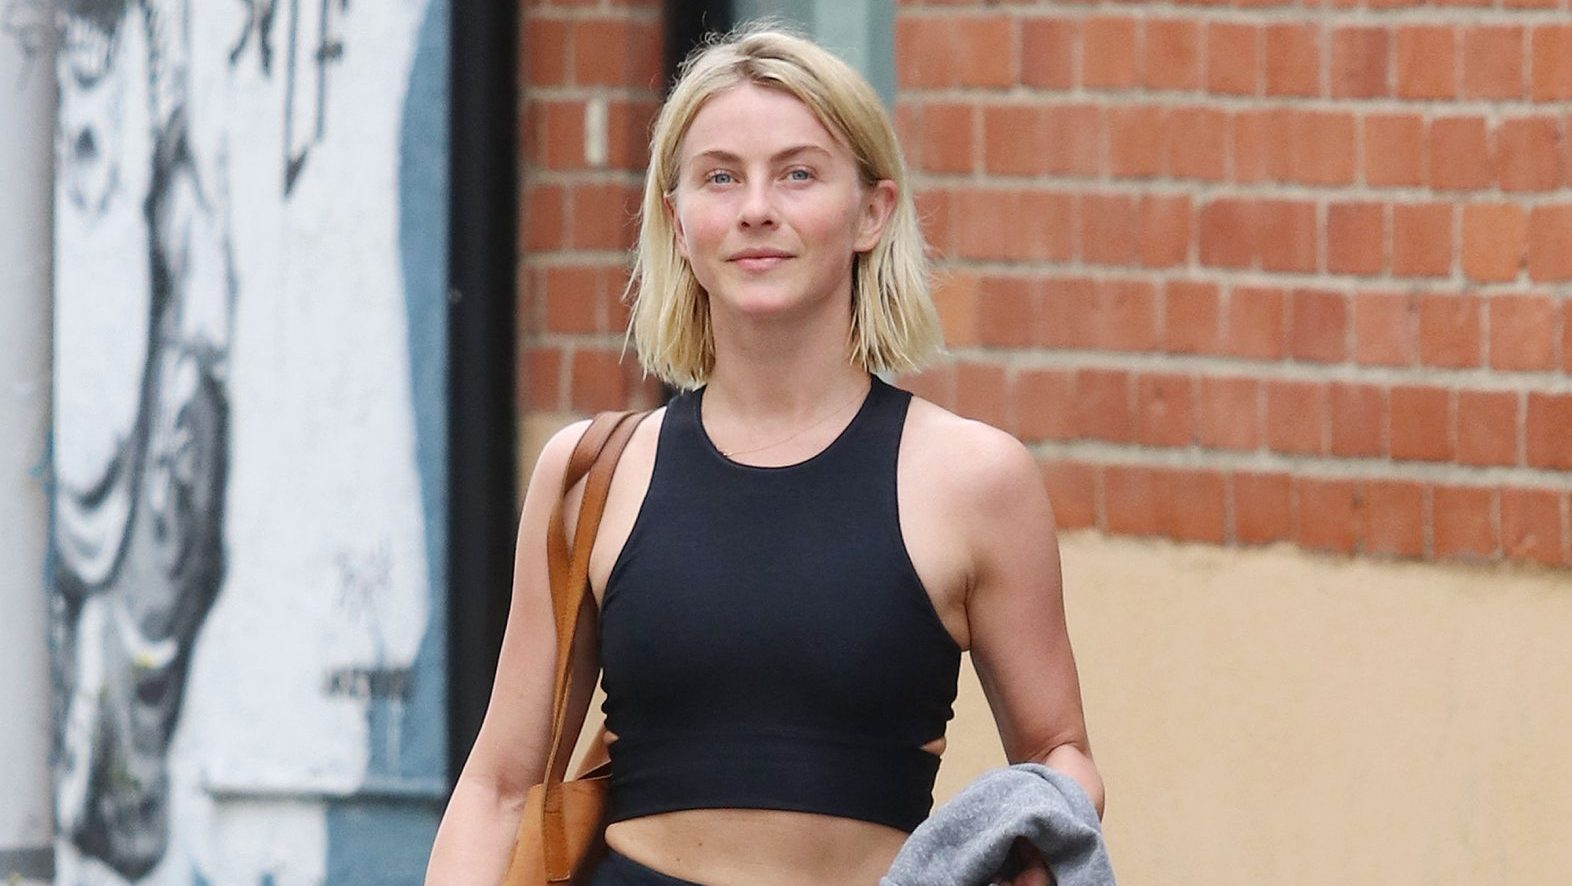 Lookin' Good! 'DWTS' Alum Julianne Hough Shows Off Her Enviable Abs While Walking Into the Gym